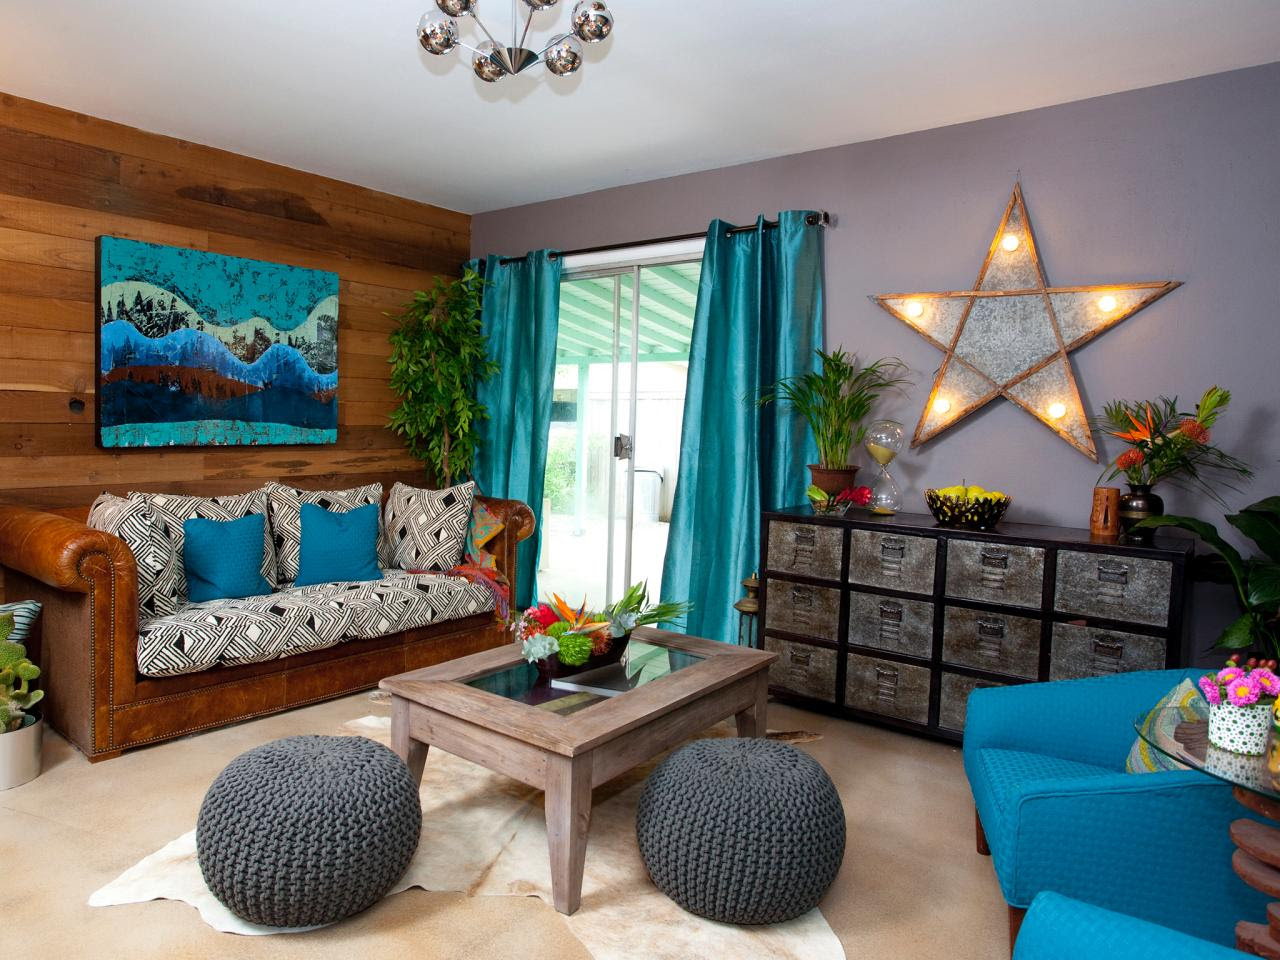 Excellent Wall Decorating Ideas for Living Room - HomesFeed